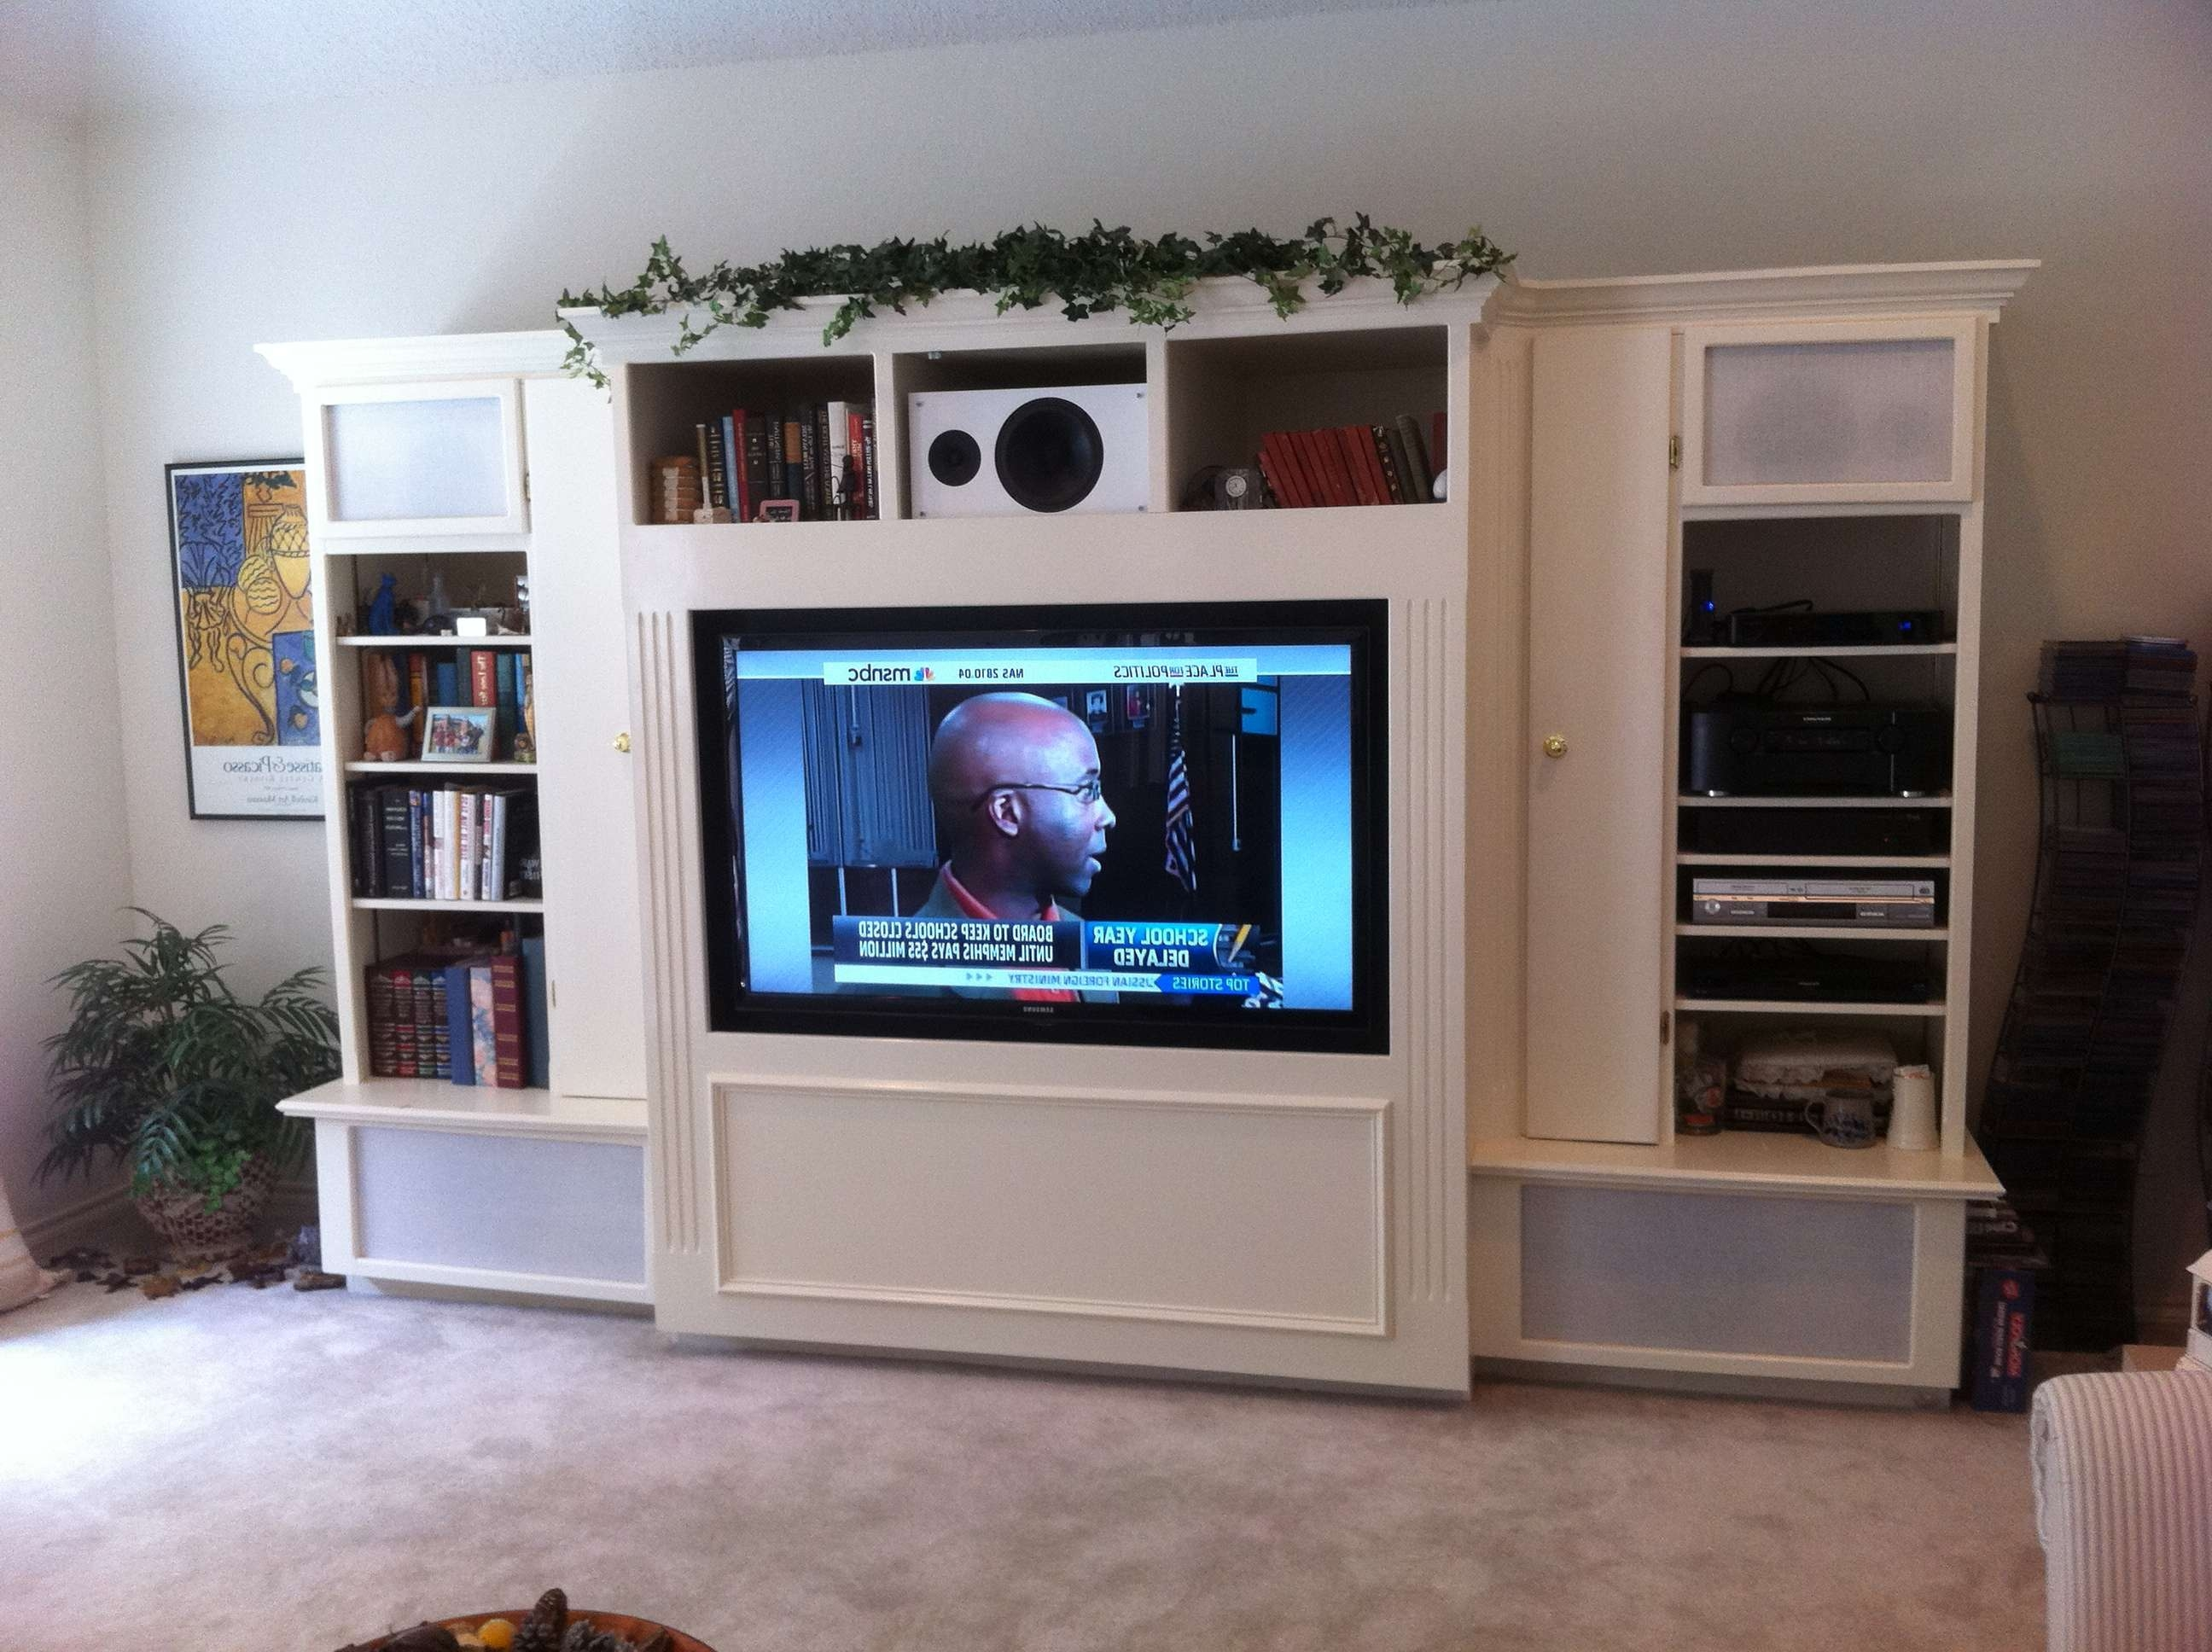 White Wooden Cabinet And Shelves Also Rectangle Black Flat Screen Regarding Glass Tv Cabinets With Doors (View 19 of 20)